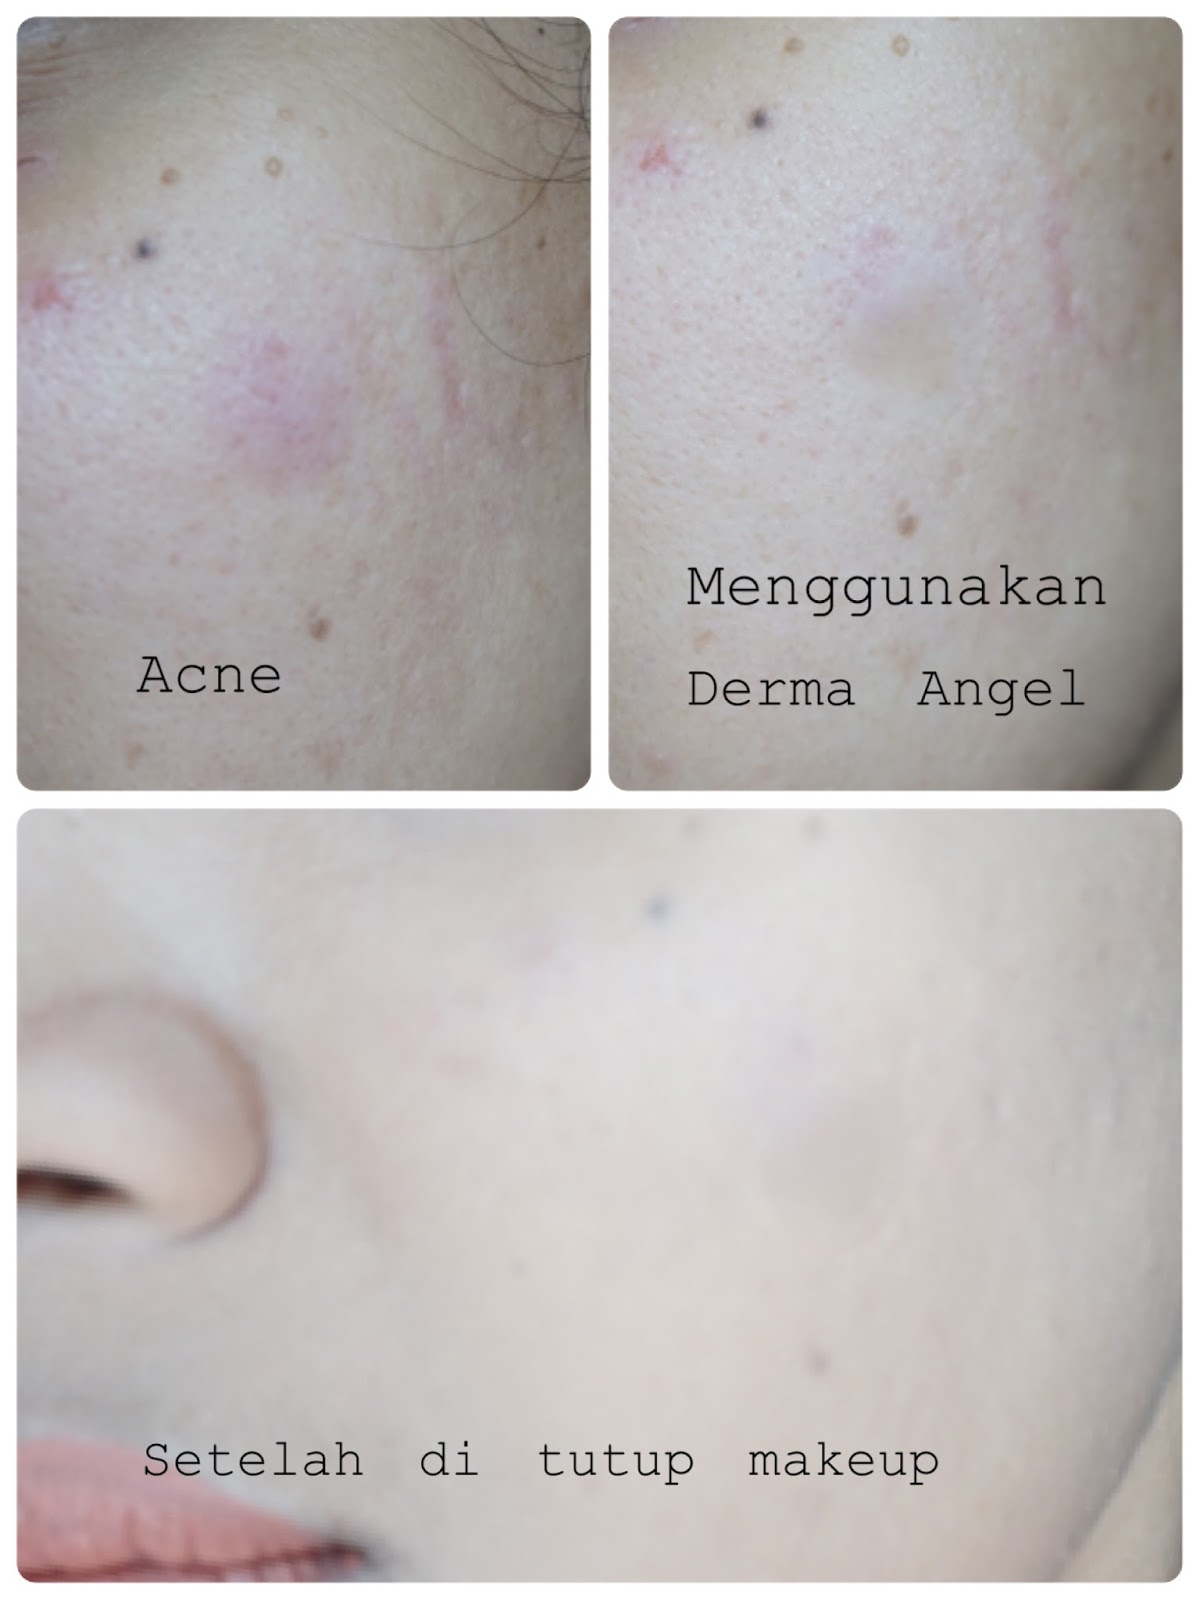 DERMA ANGEL ACNE PATCH REVIEW